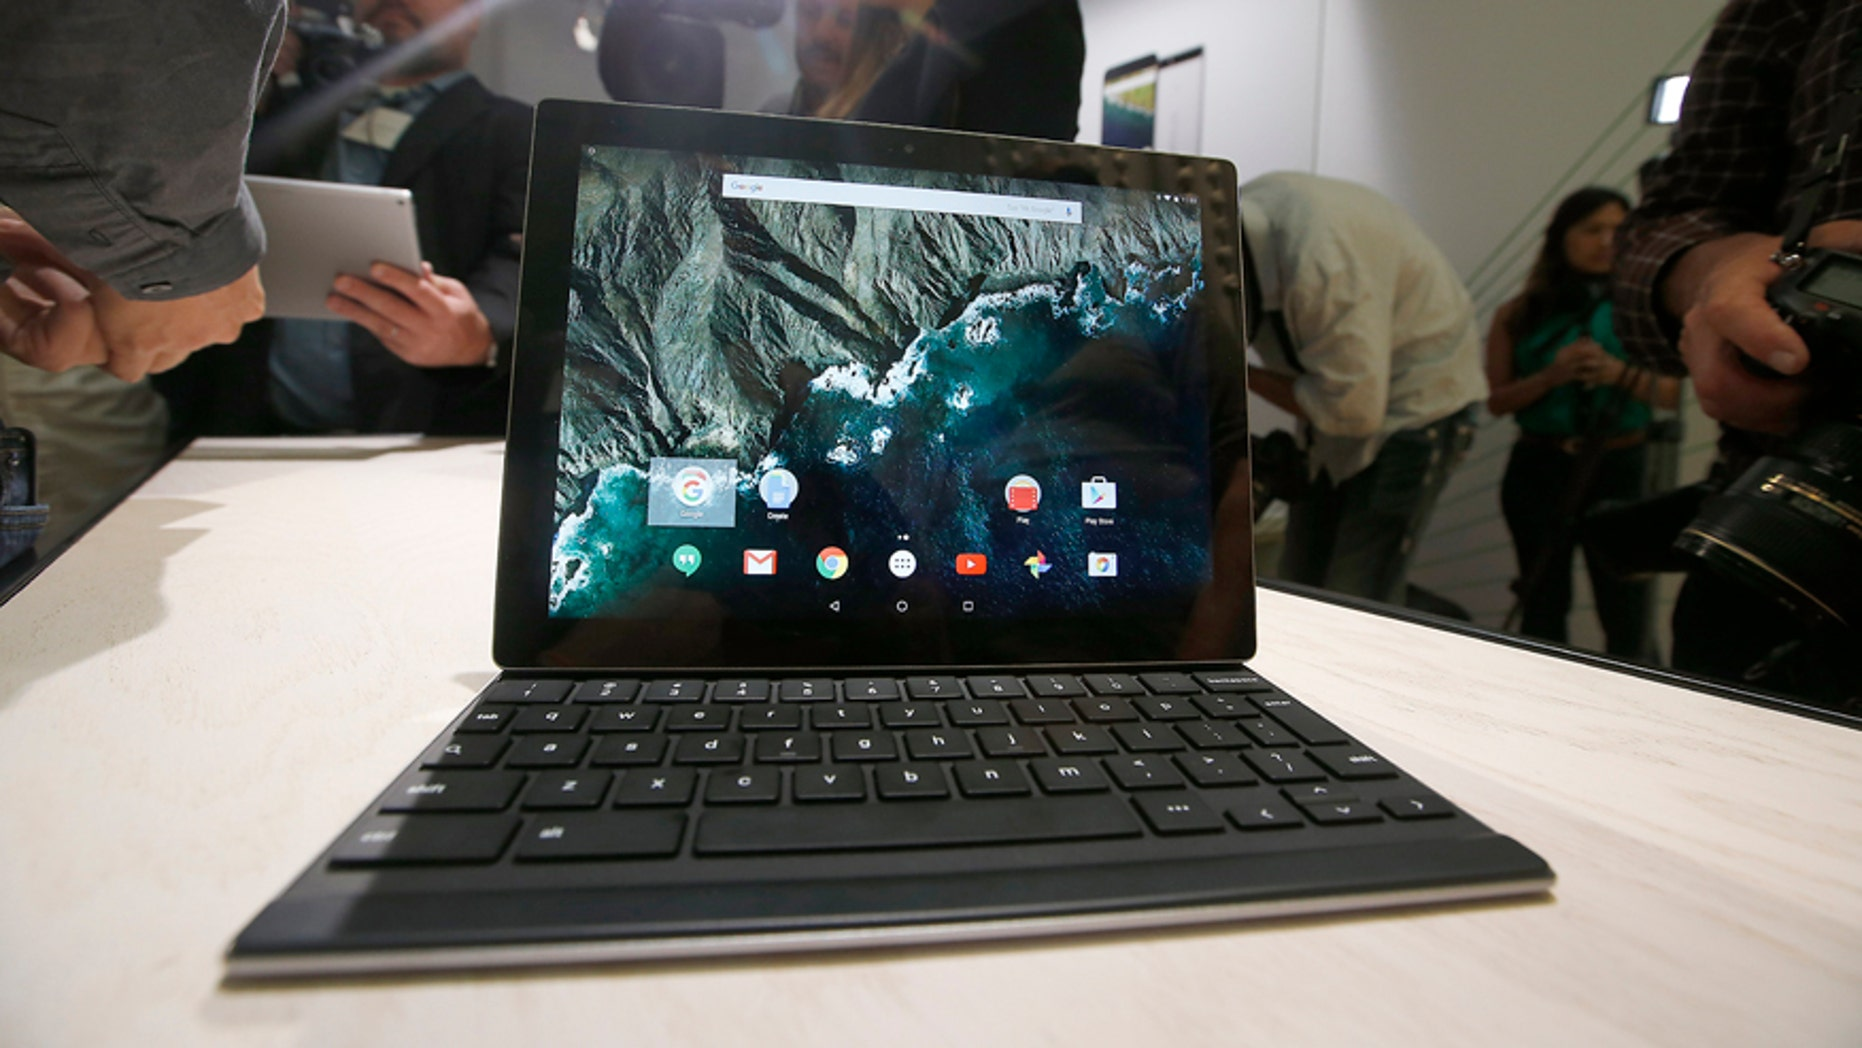 The new Google Pixel C tablet is on display during an Google event on Tuesday, Sept. 29, 2015, in San Francisco.